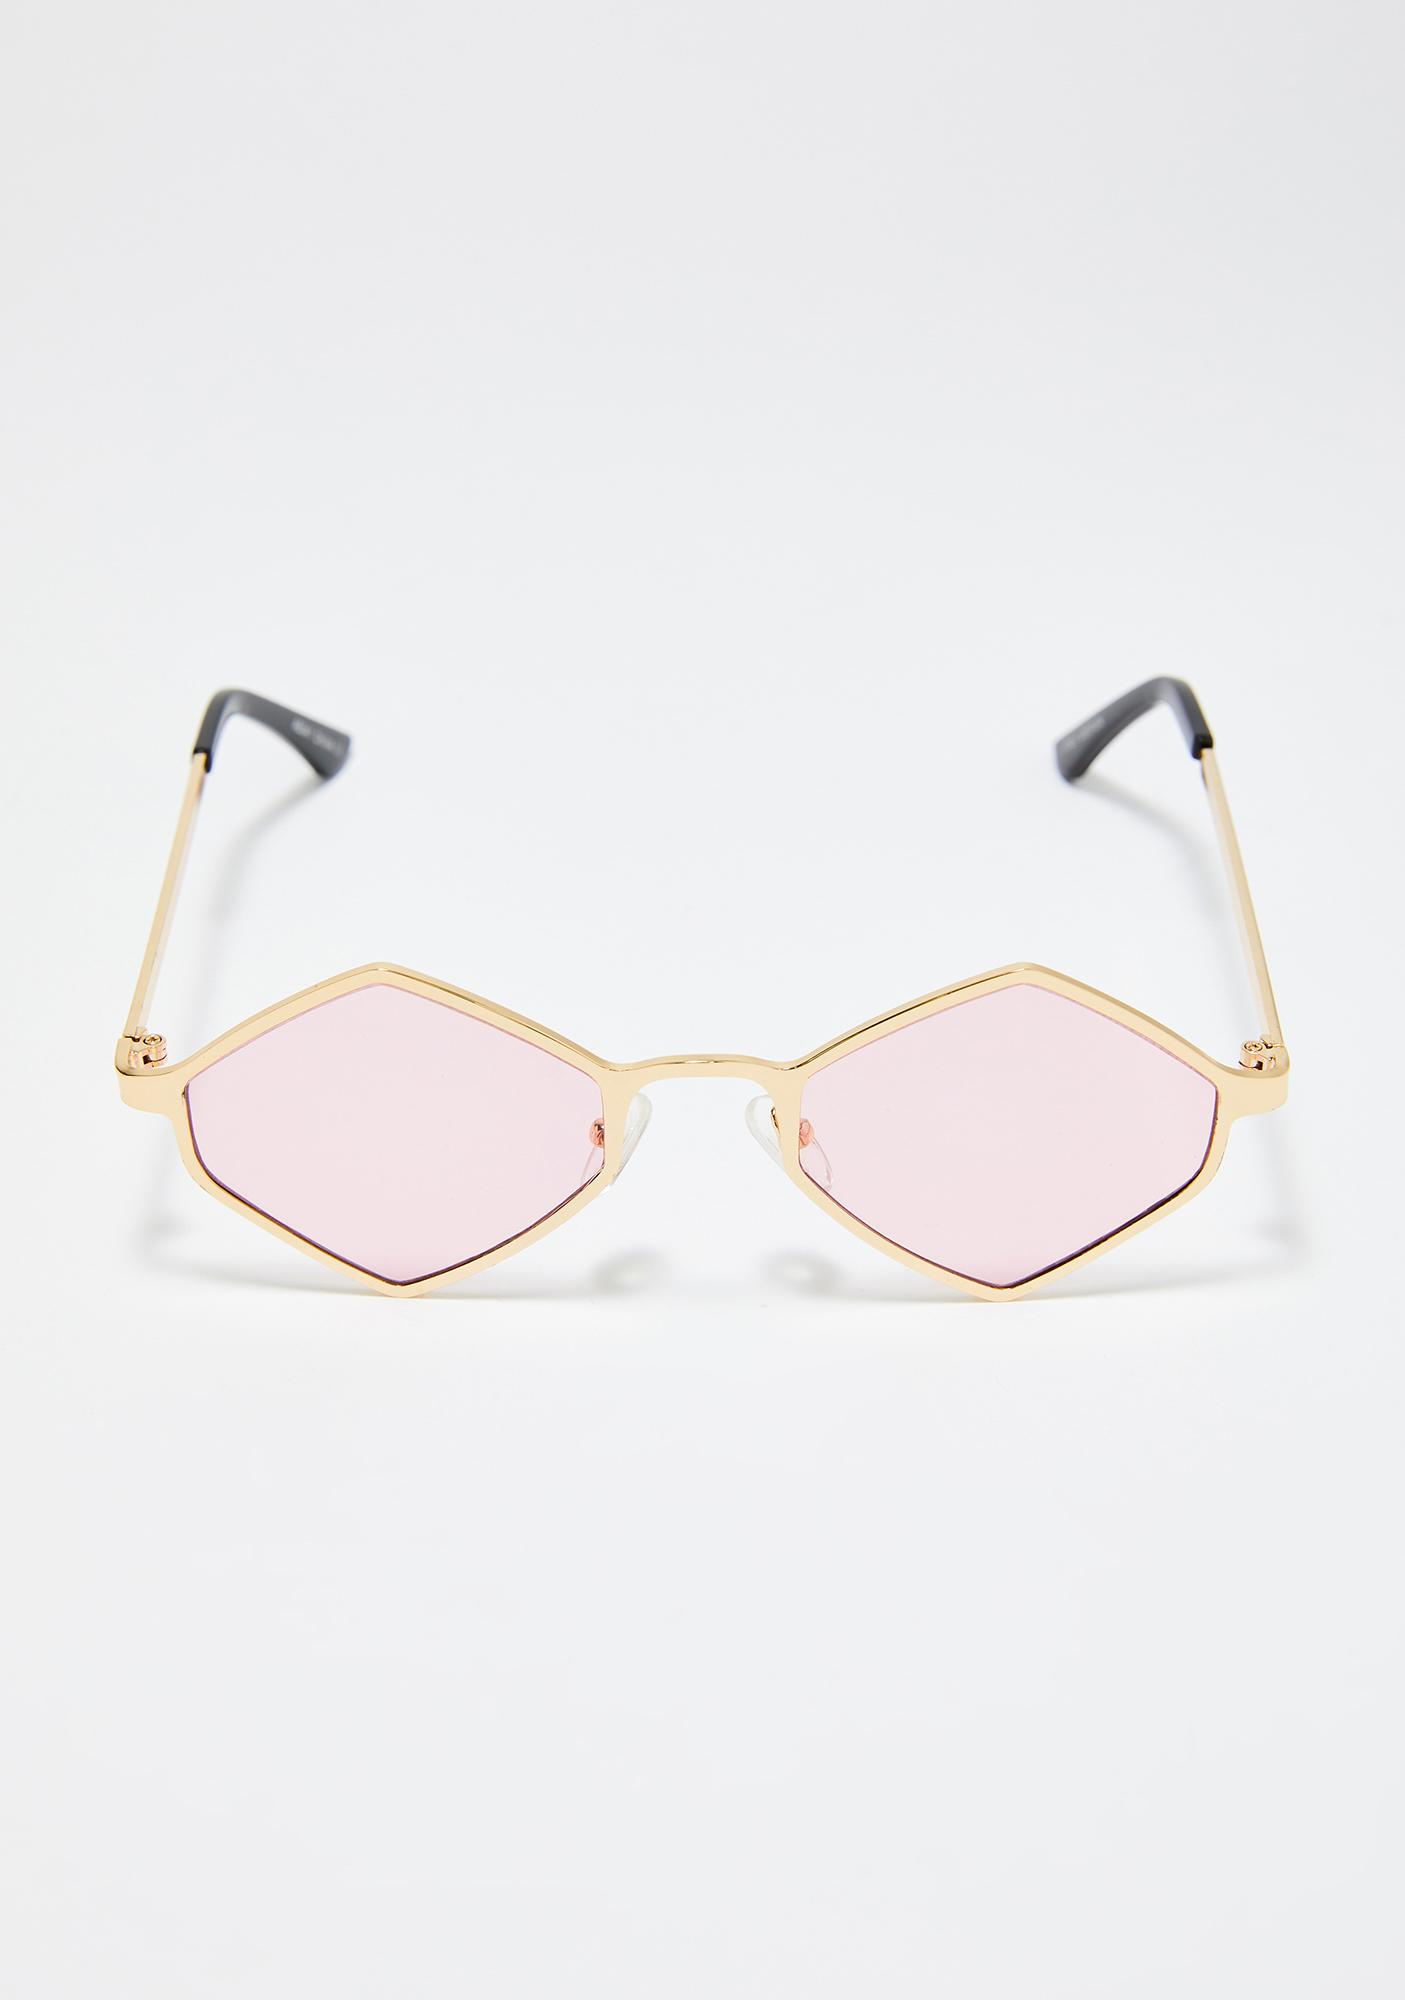 Giant Vintage Gaily Sunglasses